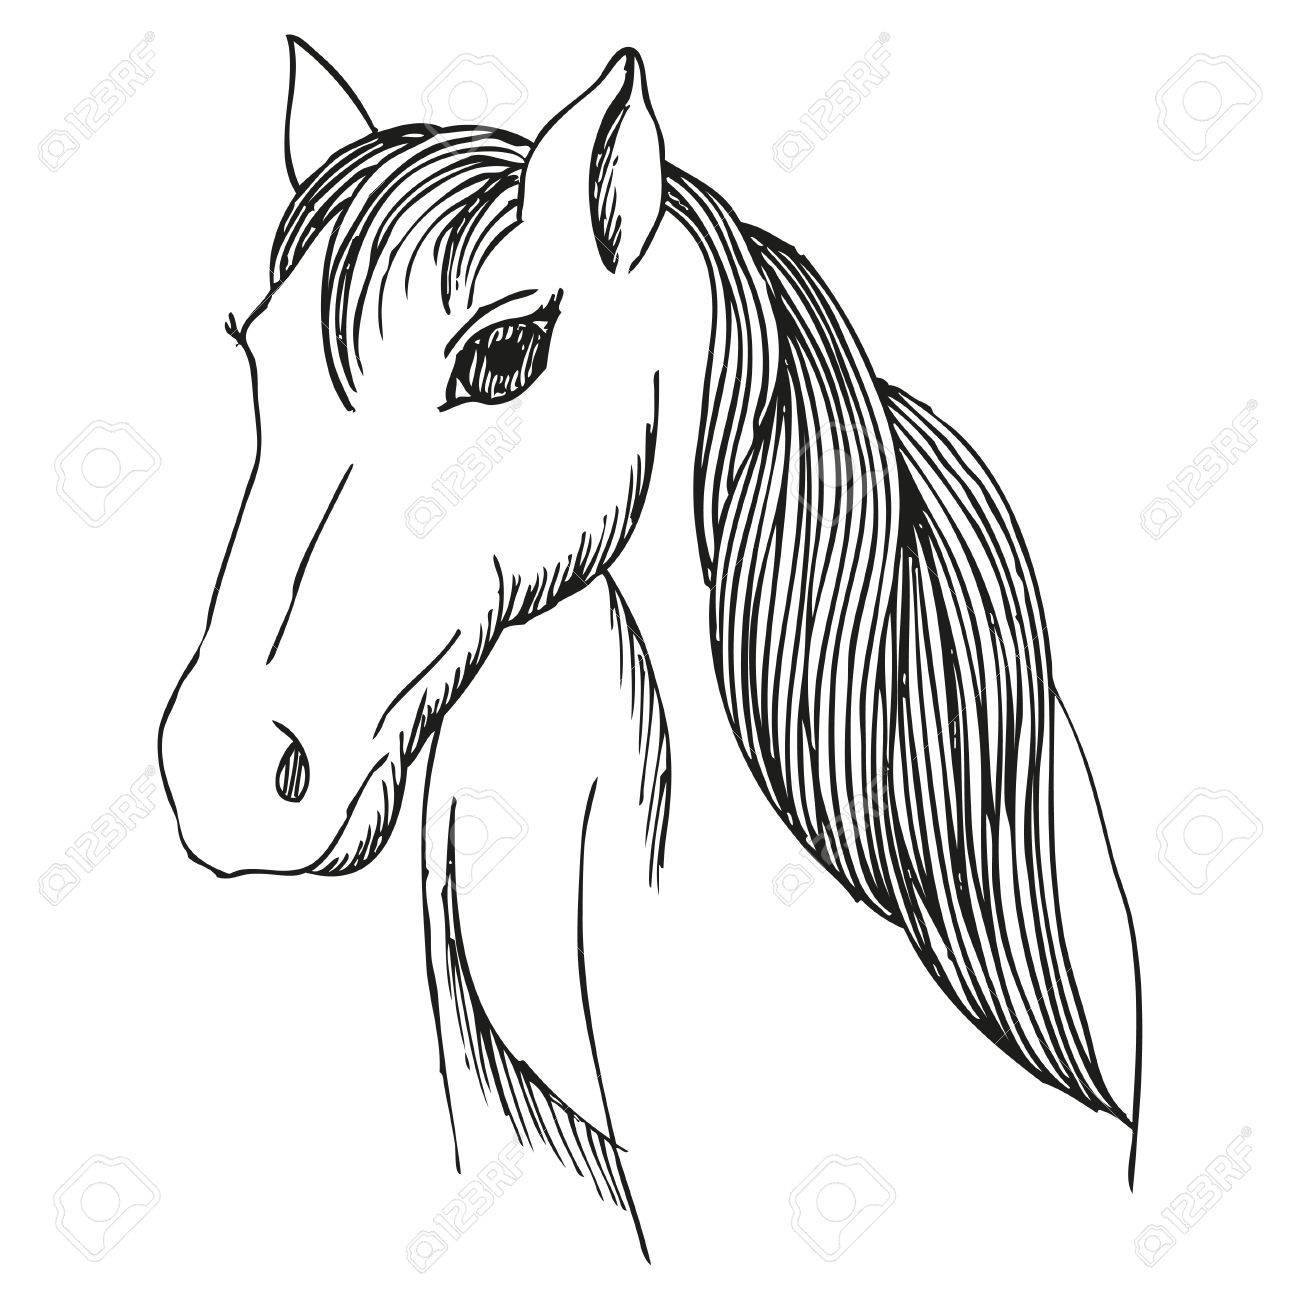 1300x1300 Hand Drawn Horse With Long Mane And Bang, Vector Sketch Of Mare